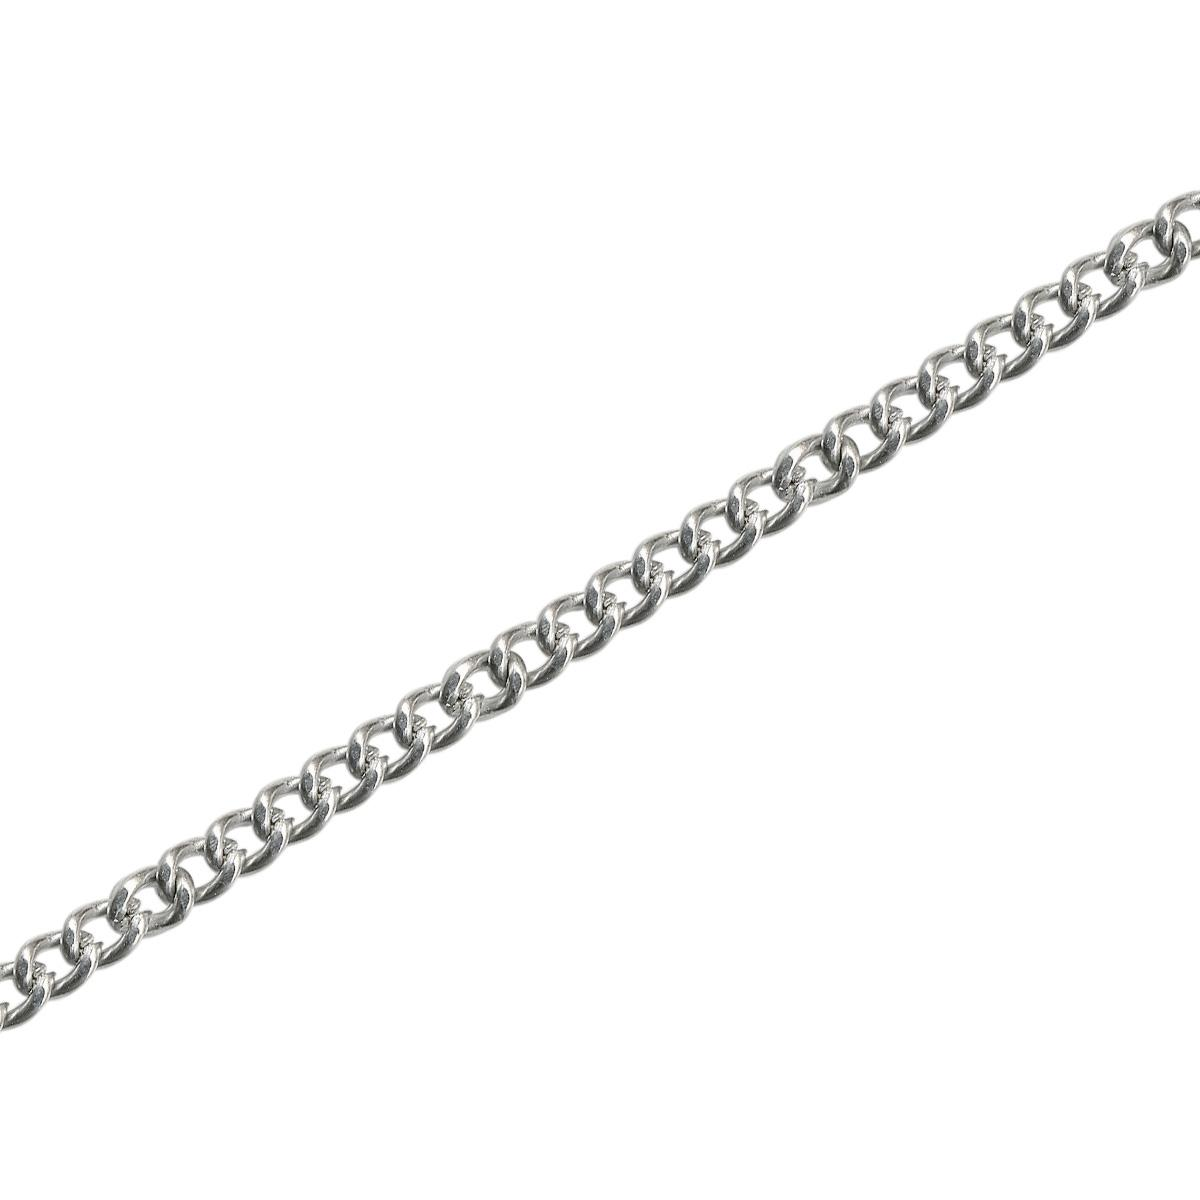 Stainless Steel Endless Curb Chain Necklace, 27